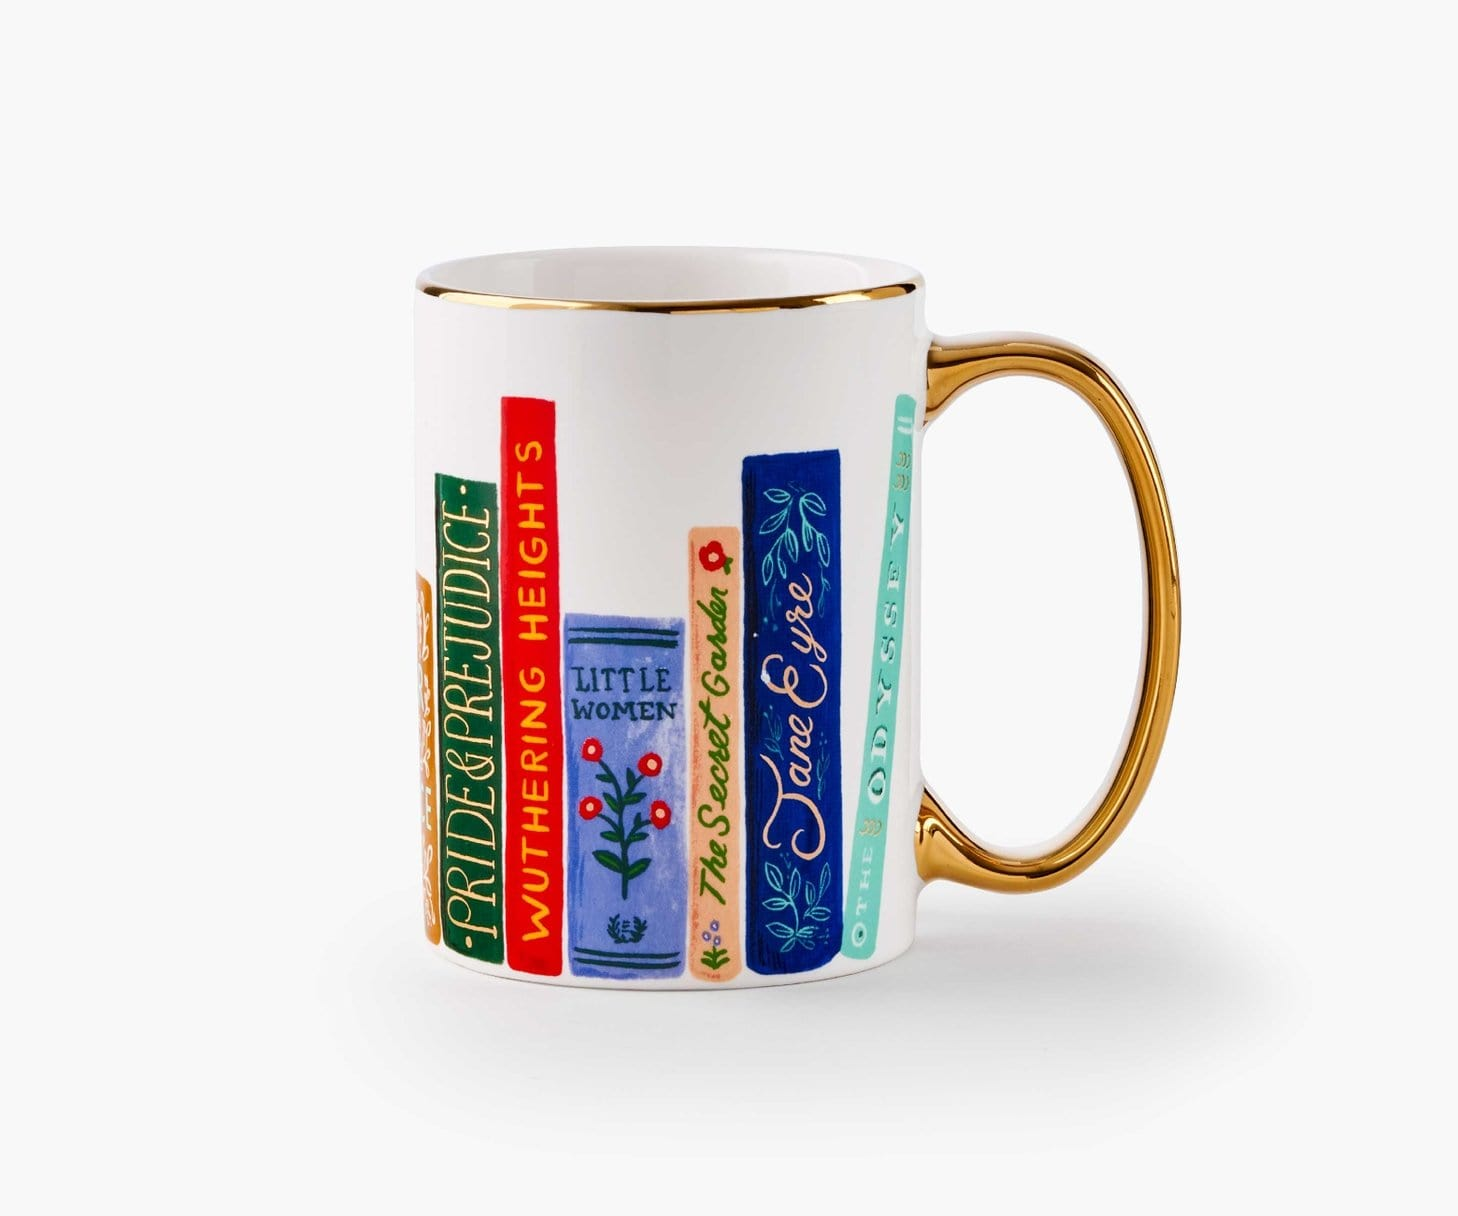 Book Club Porcelain Mug